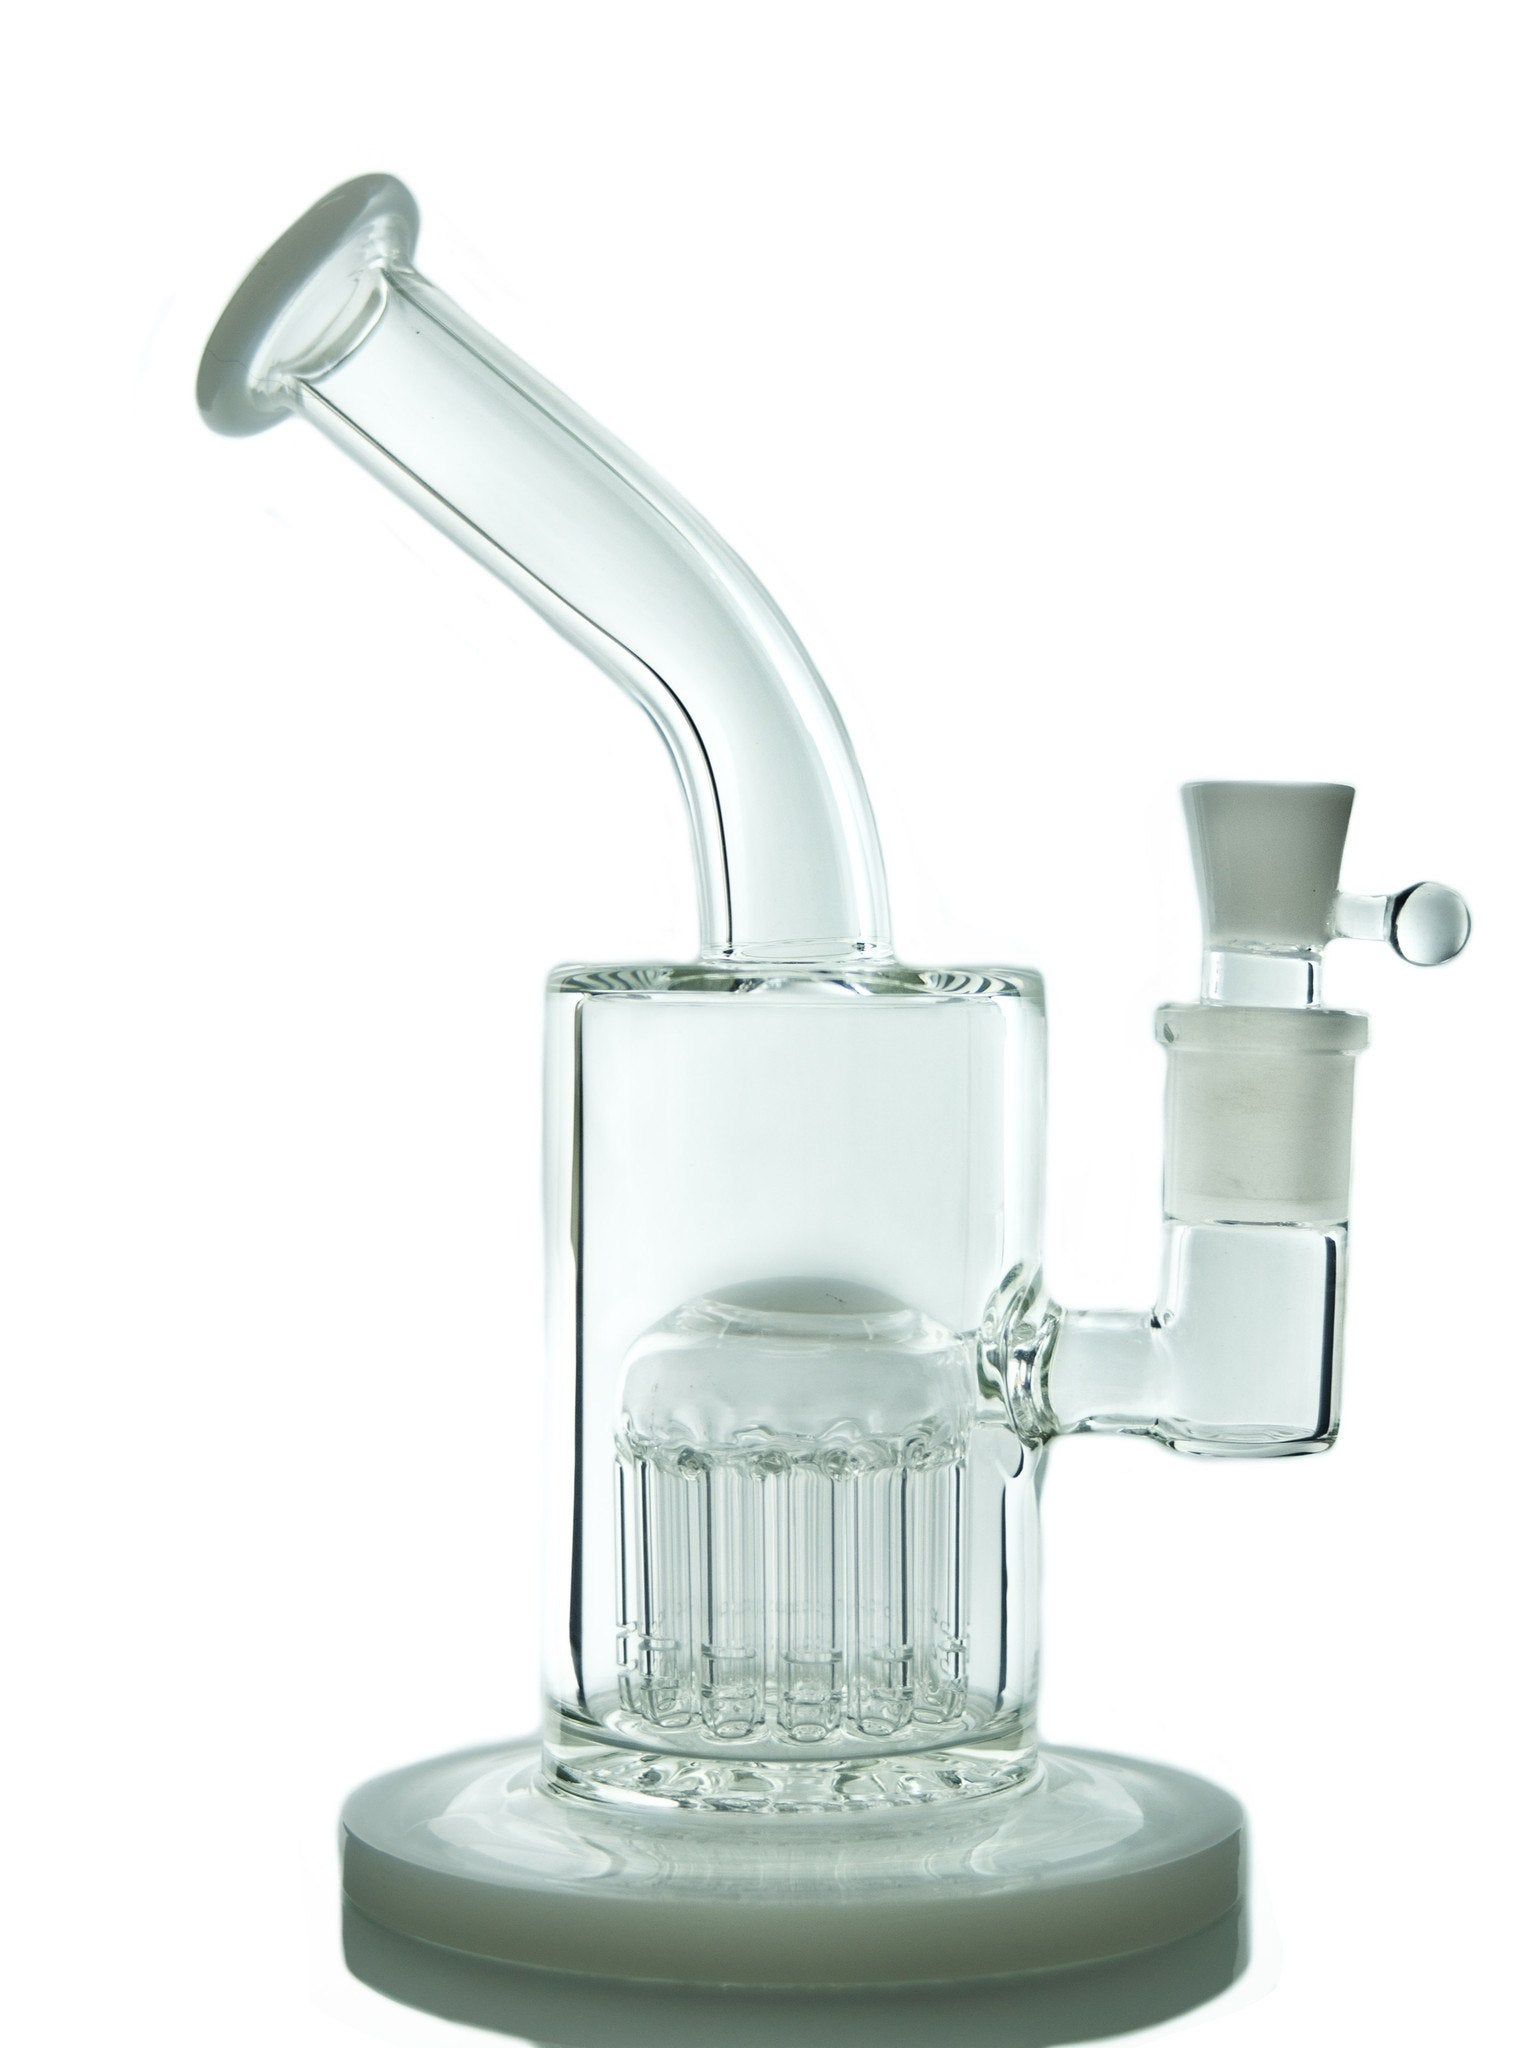 Dank Geek - 12 Arm Tree Perc